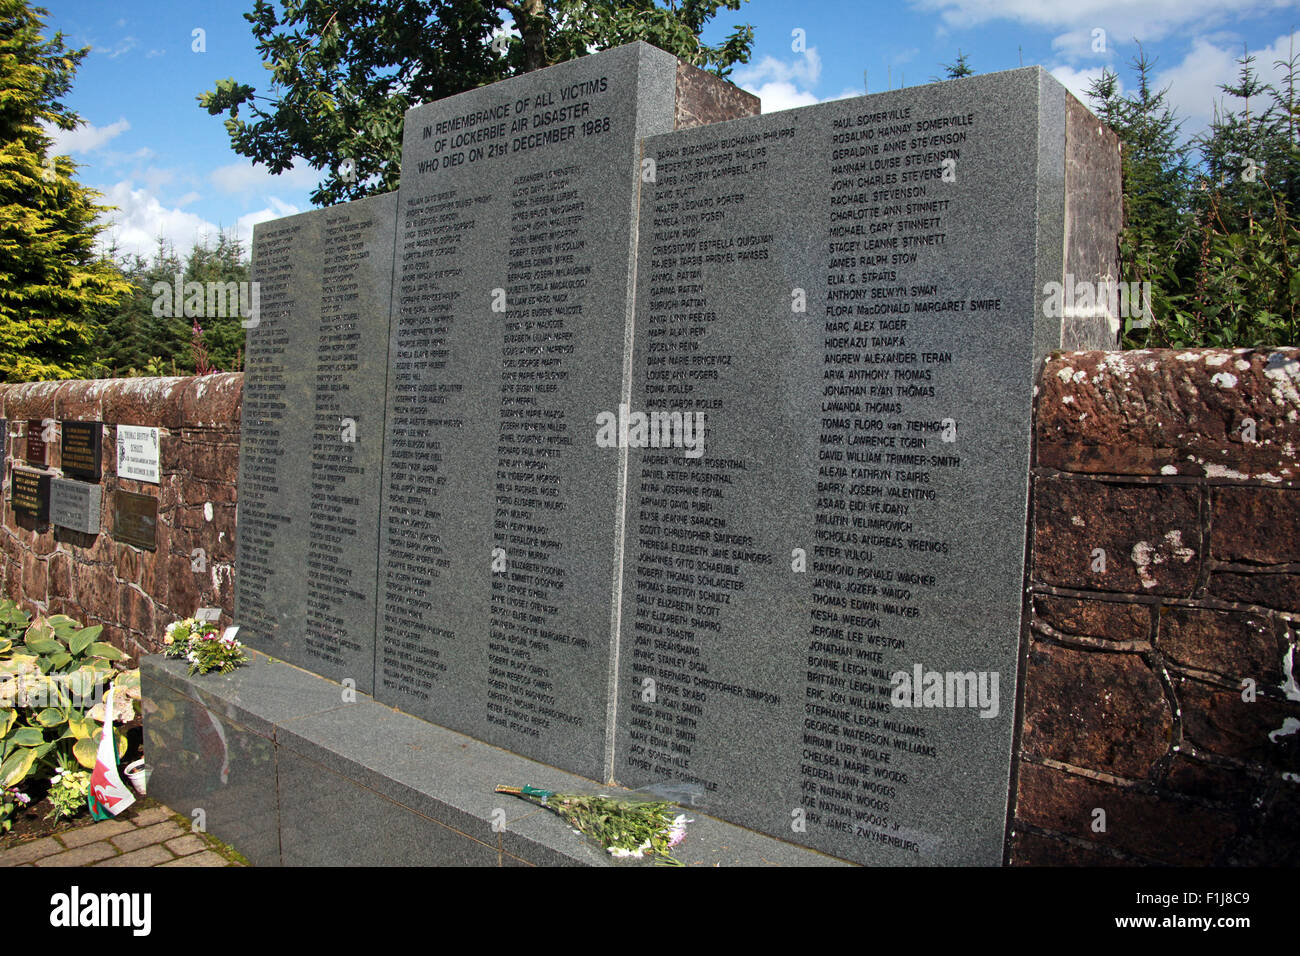 the side,Lodge,Visitors,Centre,DLVC,Trust,Lockerbie,Memorial,Remembrance,Scotland,Victims,Pan,Am,PanAm,flight,103,bomb,bombing,terrorist,December,1988,attack,crash,dead,site,21/12/1988,270,victims,Scottish,Town,conspiracy,blast,Tundergarth,Room,garden,of,Dryfesdale,Cemetery,news,Cultural,New York,GoTonySmith,Lodge,Visitors,Centre,DLVC,Trust,Lockerbie,Memorial,Scotland,Victims,Pan,Am,PanAm,flight,103,bomb,bombing,terrorist,December,1988,attack,crash,dead,site,21/12/1988,270,victims,Scottish,Town,conspiracy,blast,Tundergarth,Room,garden,of,Dryfesdale,Cemetery,news,Cultural,understanding,remembering,innocent,transatlantic,Frankfurt,Detroit,Libyan,Libya,Colonel Muammar Gaddafi,civil,case,compensation,terrorism,PA103,30,30years,years,Syracuse,University,SU,family,collections,Story,Archive,Archives,40,35,Timeline,saga,disaster,air,Scholars,program,programs,remembrance,Clipper Maid of the Seas,N739PA,Boeing,727,plane,aircraft,Scotland,UK,United Kingdom,GB,Great Britain,resting,place,Buy Pictures of,Buy Images Of,New York,al megrahi,30 Years